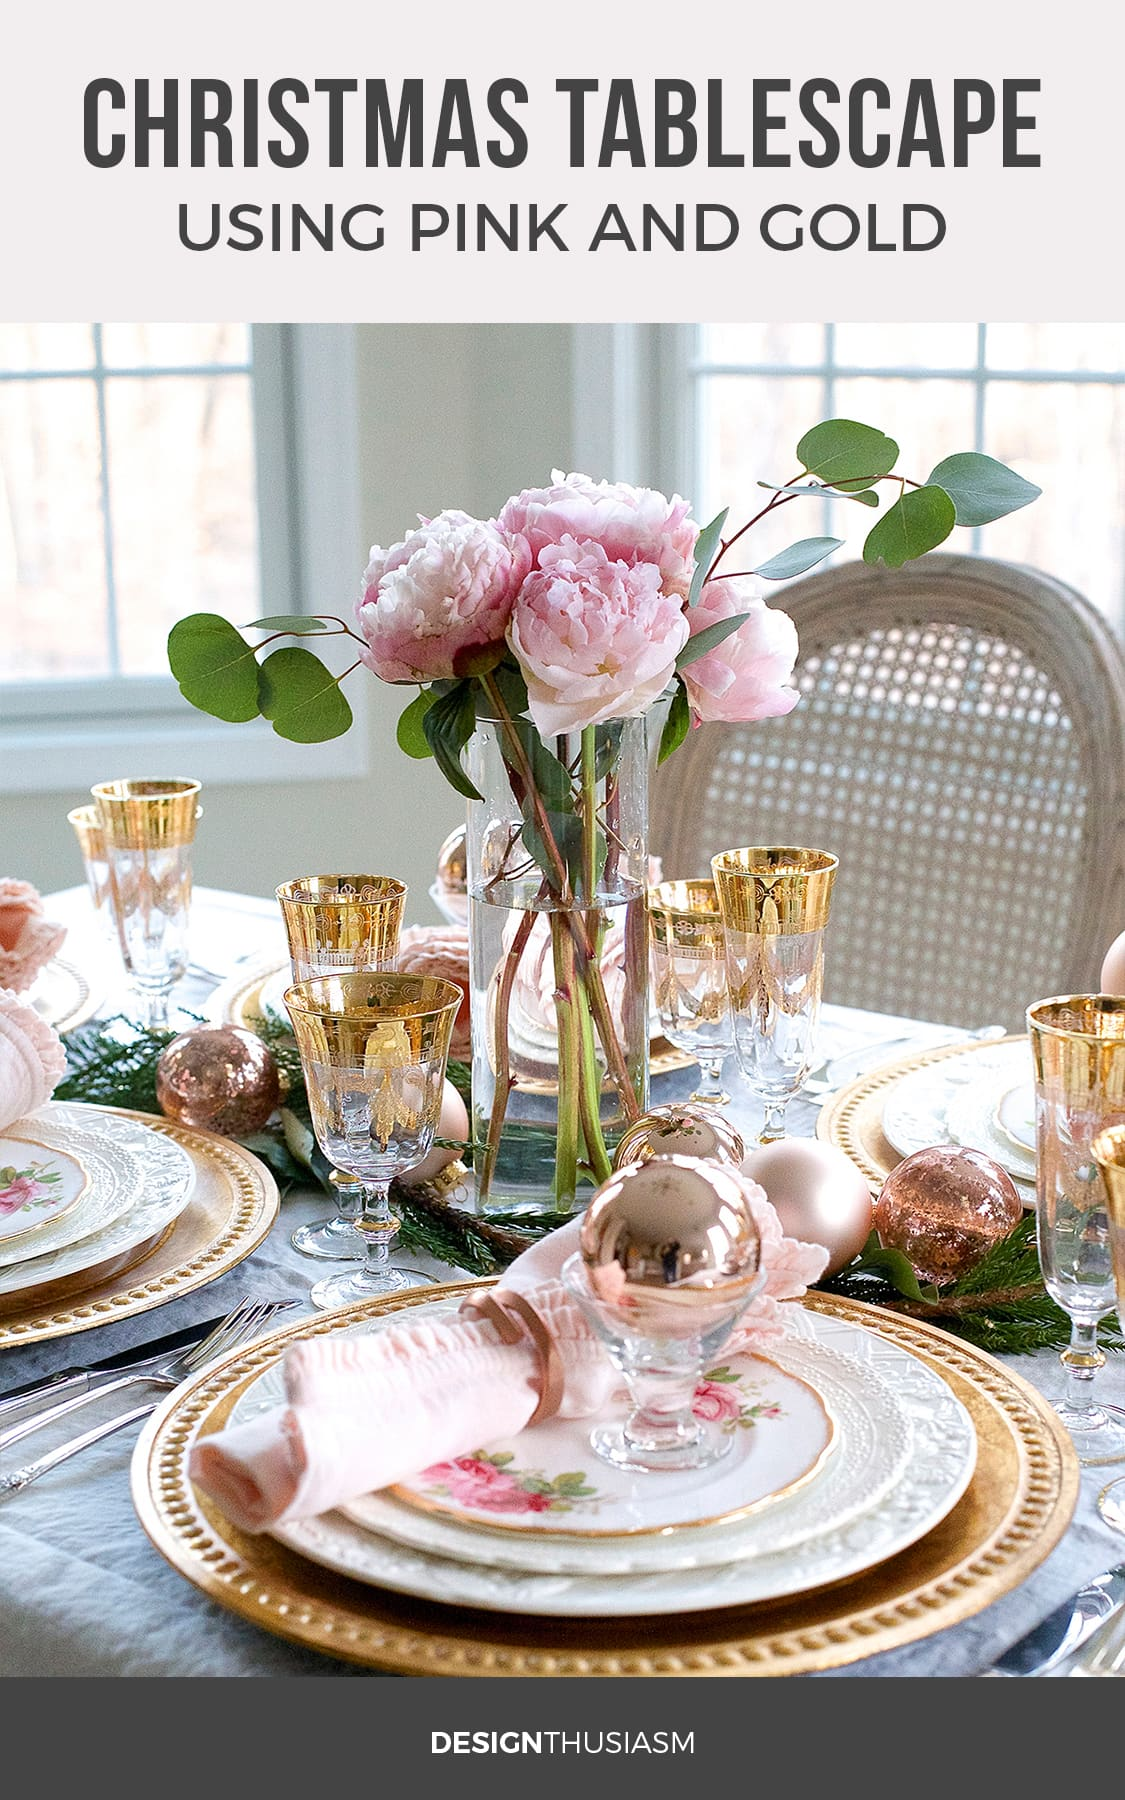 Elegant Holiday Table Setting With Gold And Pink Christmas Decorations